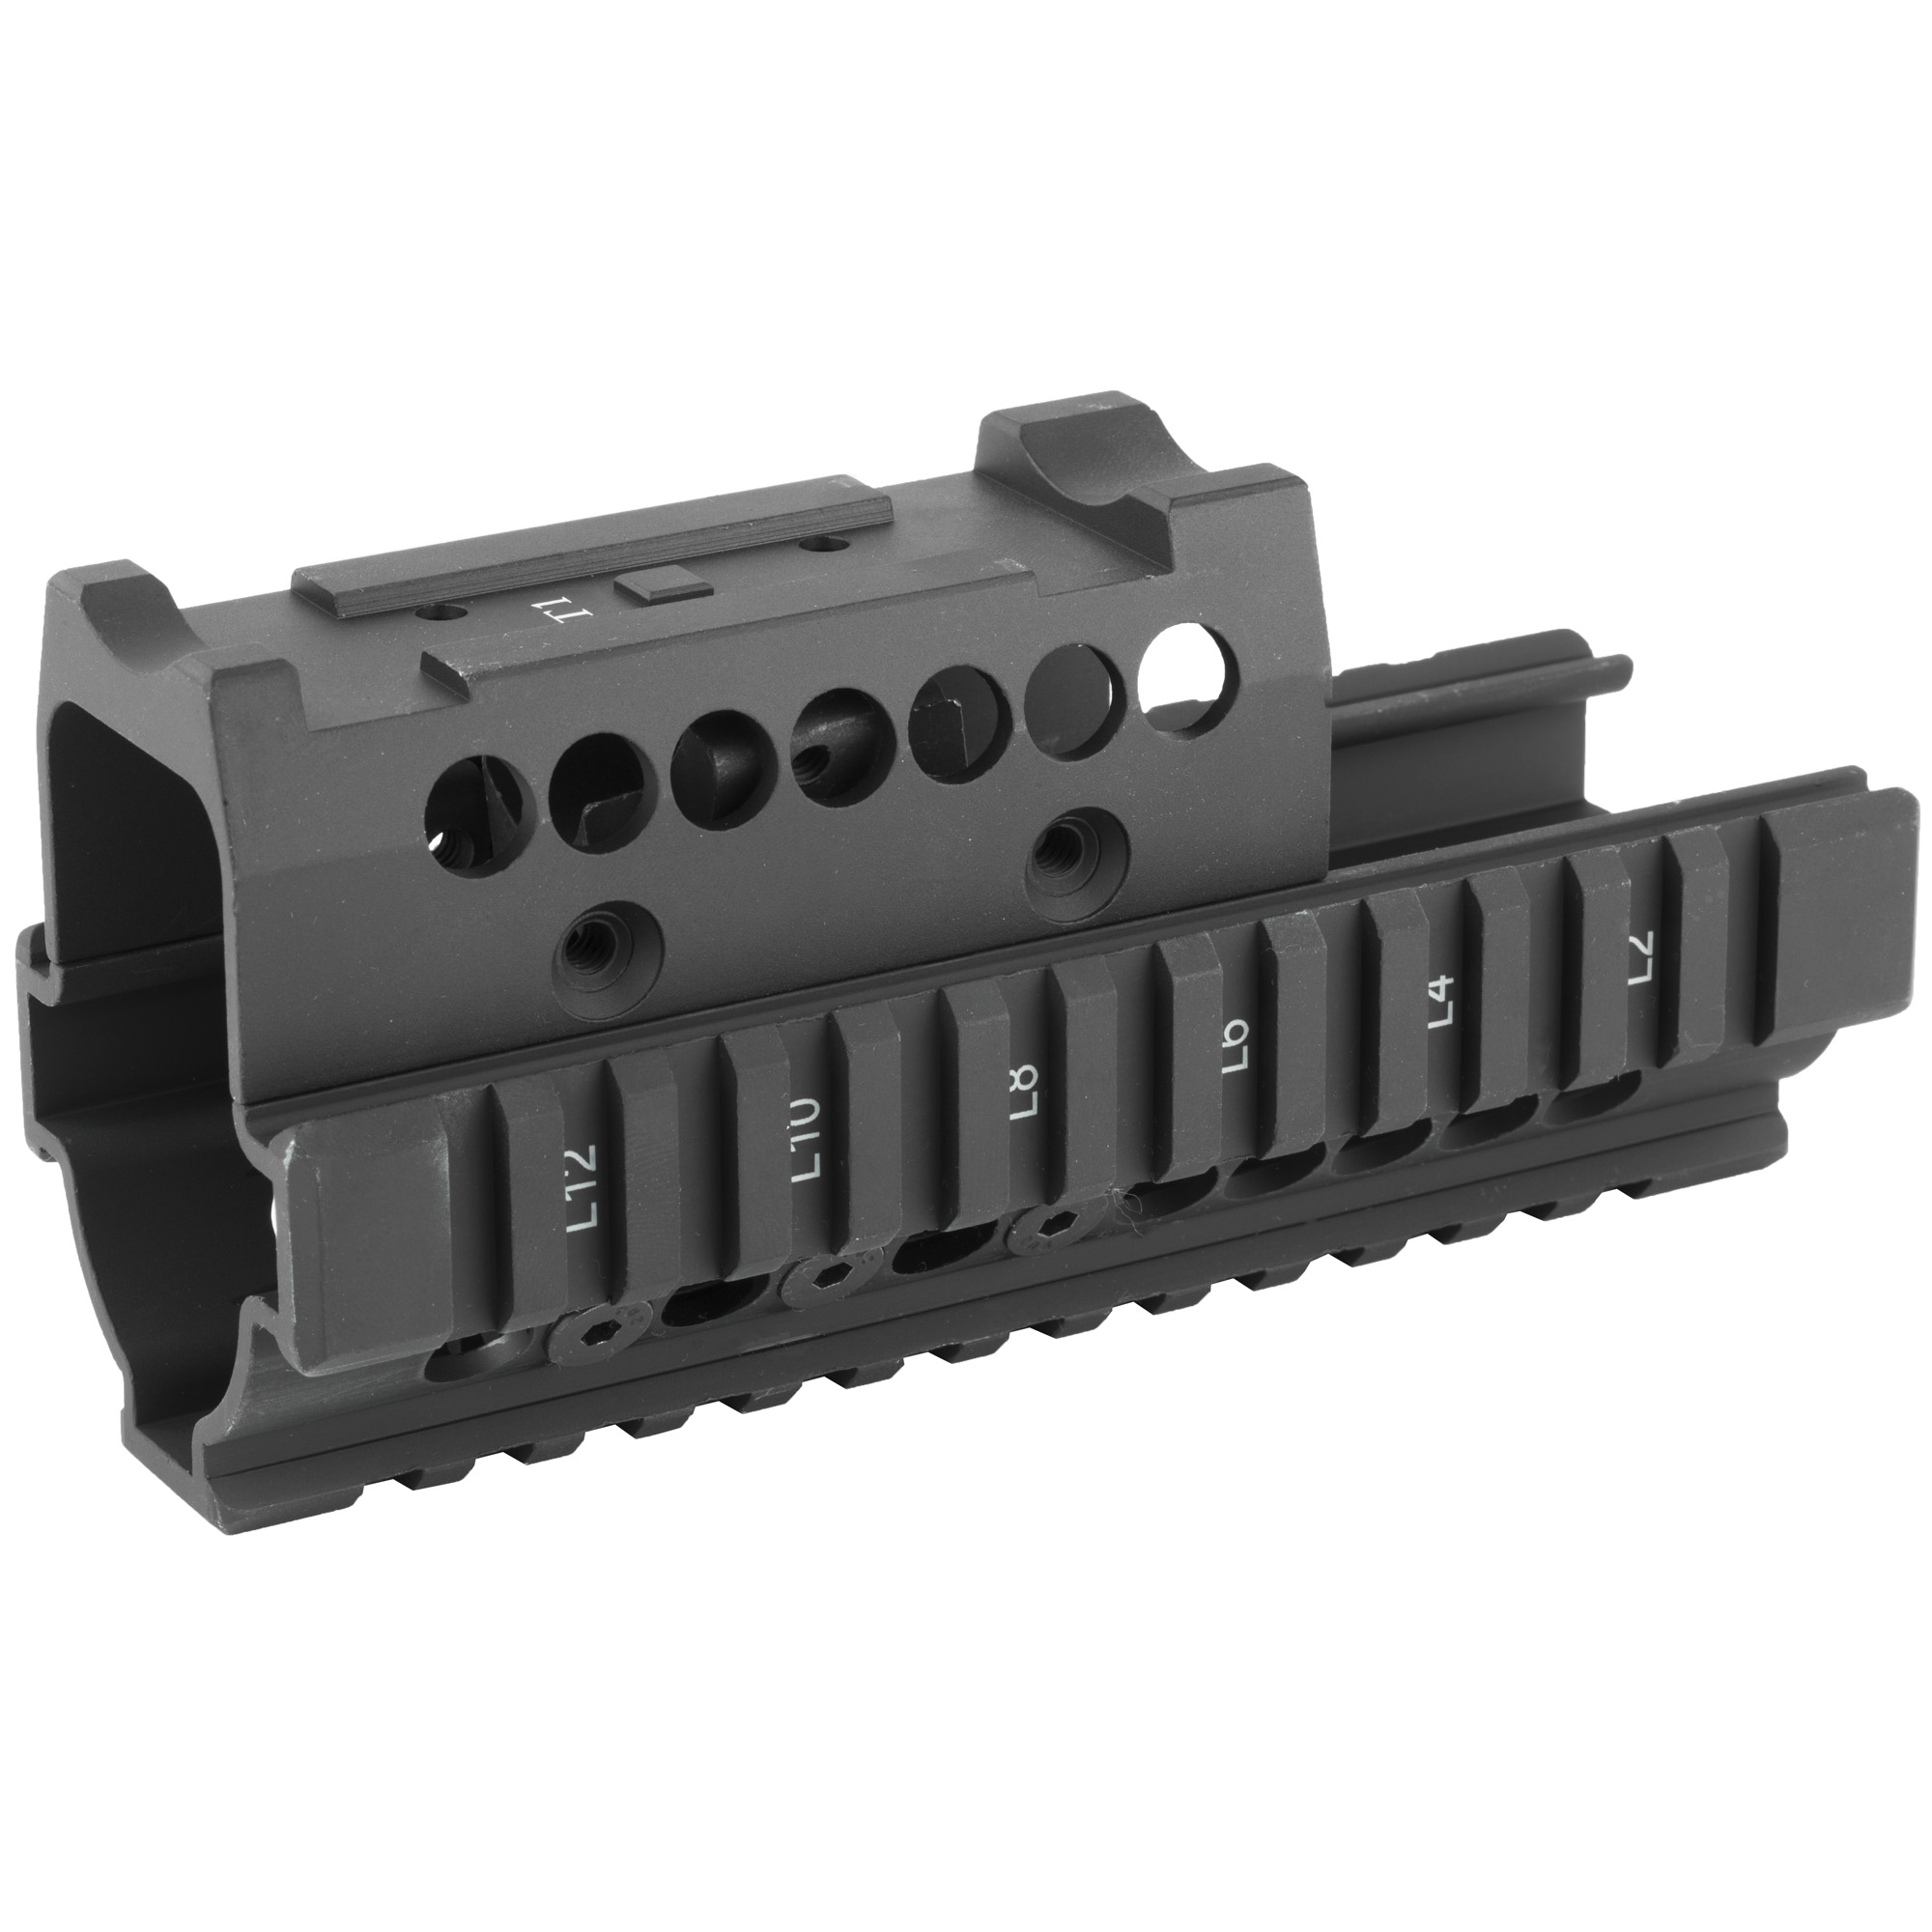 "Midwest Industries is a proven leader in the firearm industry. Made in America"" focusing on the small details to make your rifle platform better. The addition of their AK series of handguards to your rifle platform creates the rail space you need to add your accessories and change the feel of your rifle with a new streamline design. This Forearm for AK with Aimpoint T-1 Top cover with T-marked mil-spec 1913 rails installs in minutes using provided wrenches. Fits AK-47 & AK-74 variants. Fits Aimpoint T1 Top cover"" Vortex Sparc Top cover and Primary Arms Top cover. In most cases"" the top cover allows for the use of the red dot and iron sights."